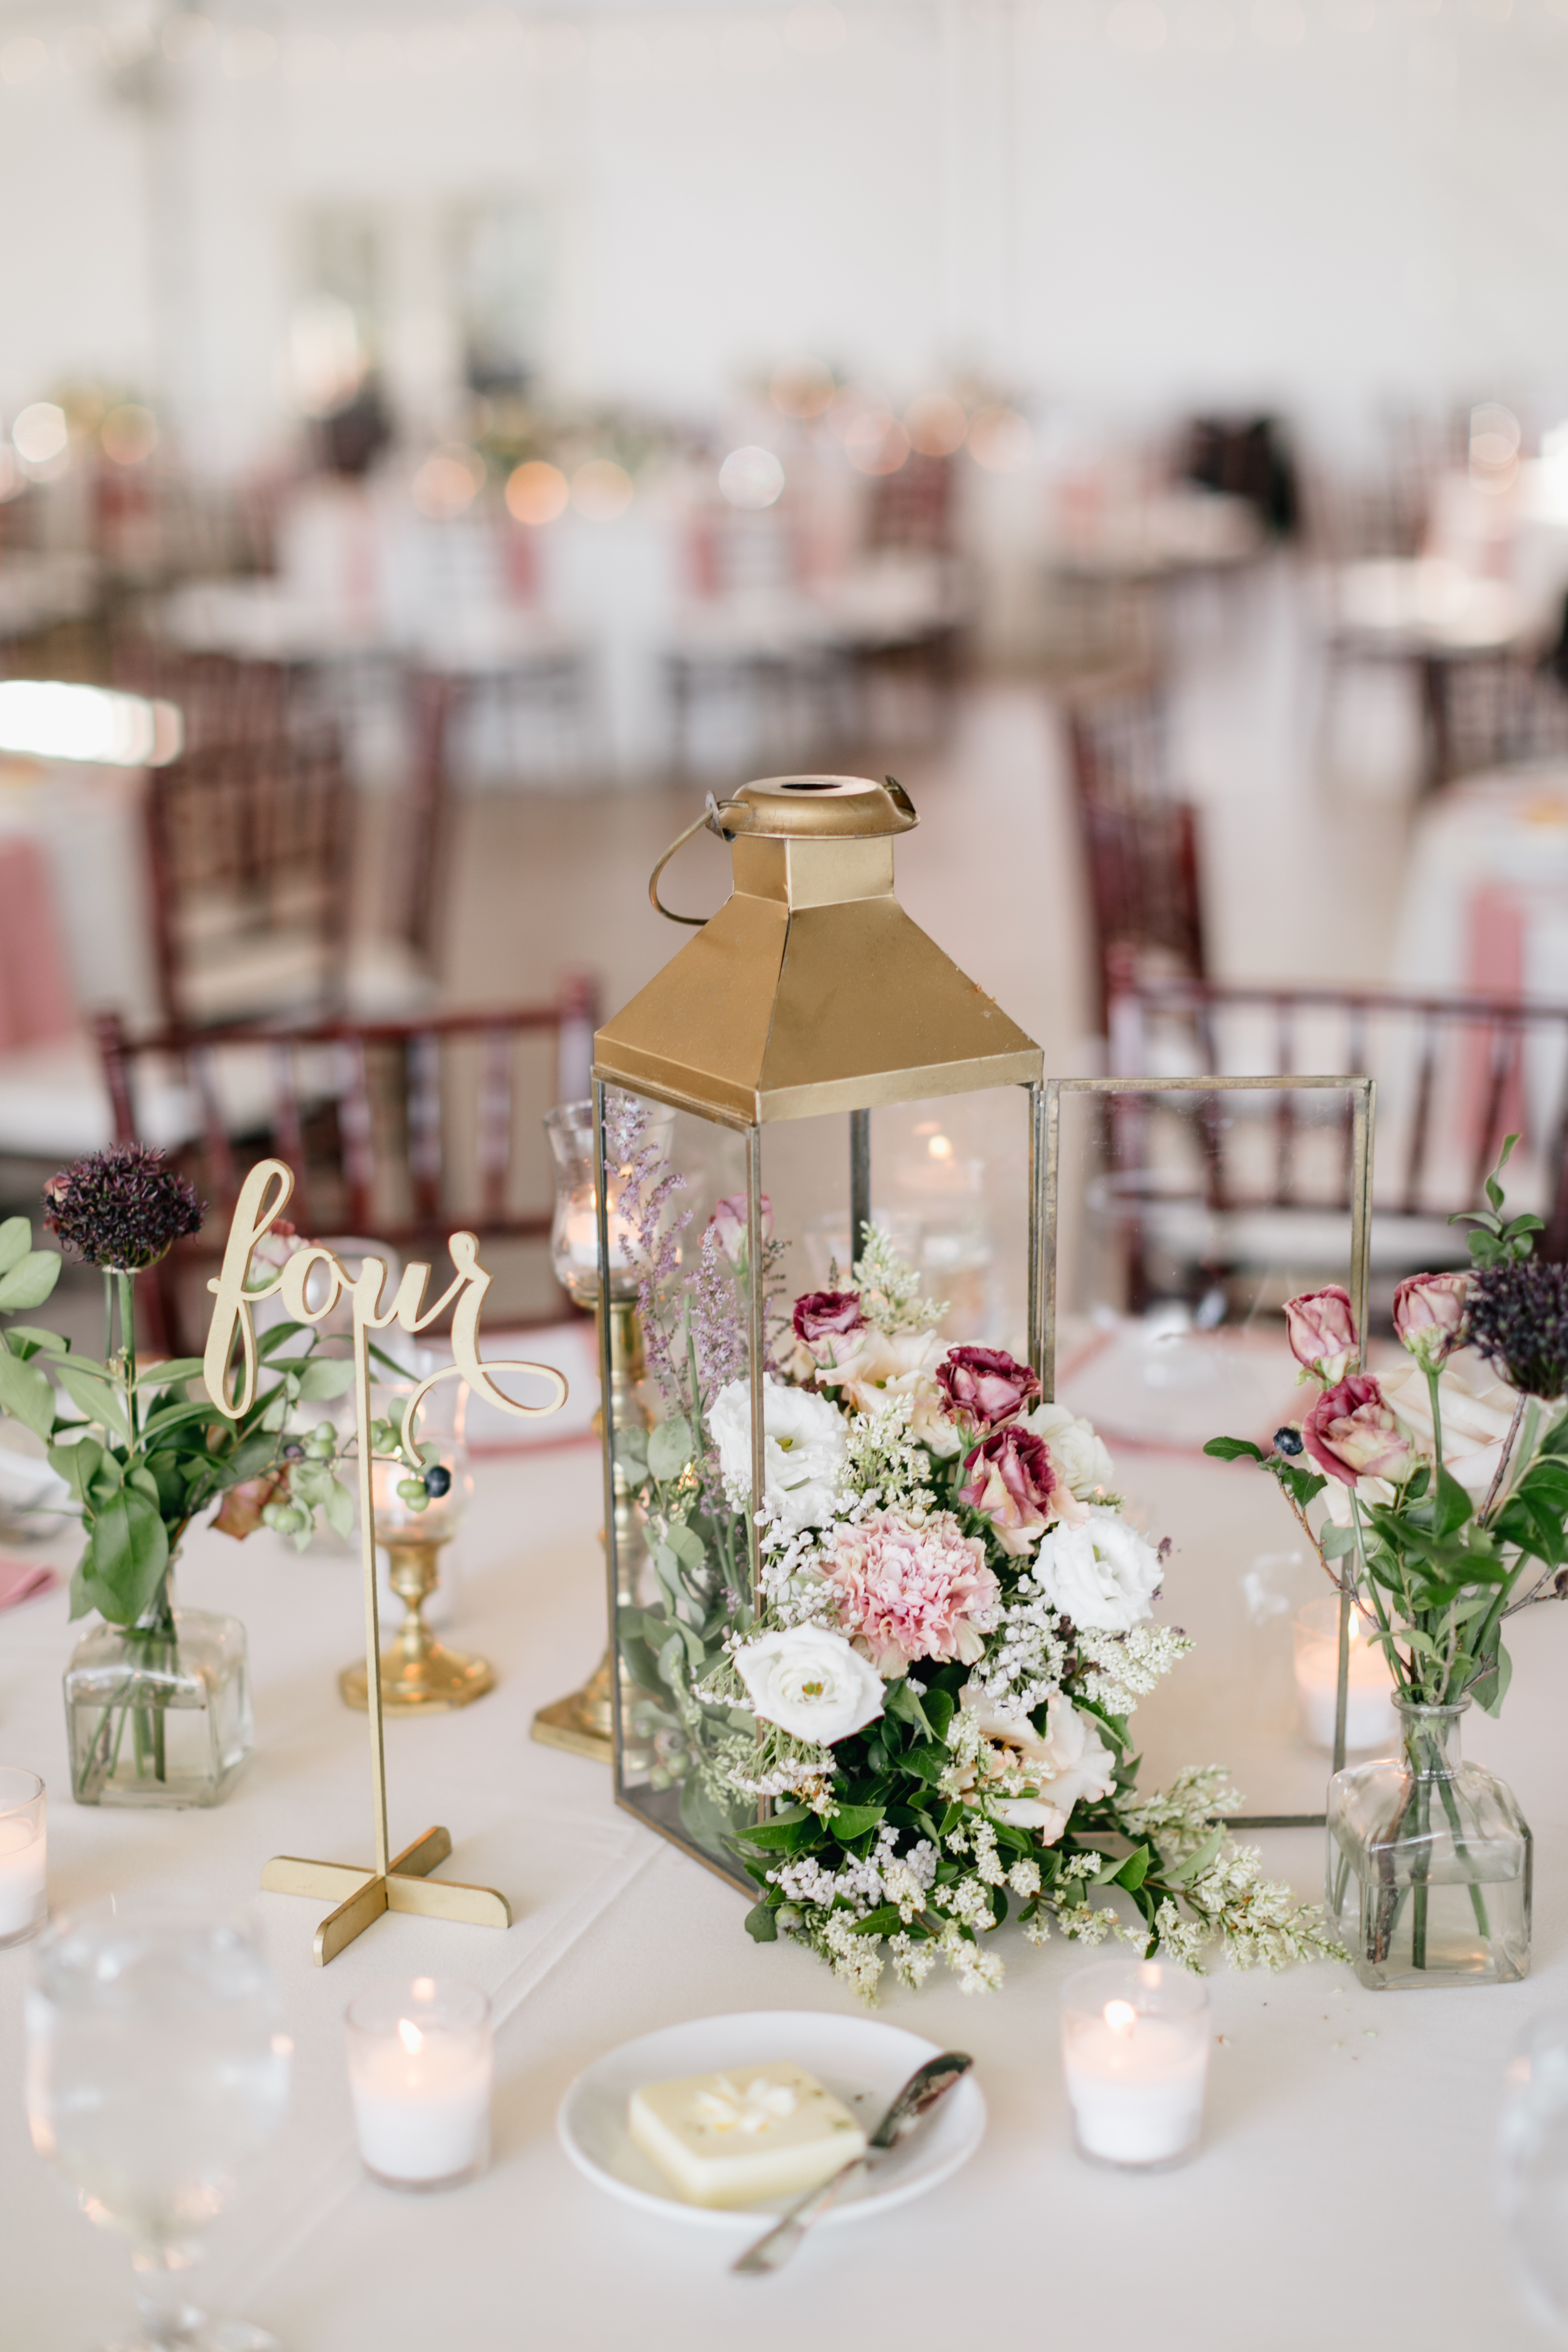 30 Rose Centerpieces That Will Upgrade Your Reception Tables ...